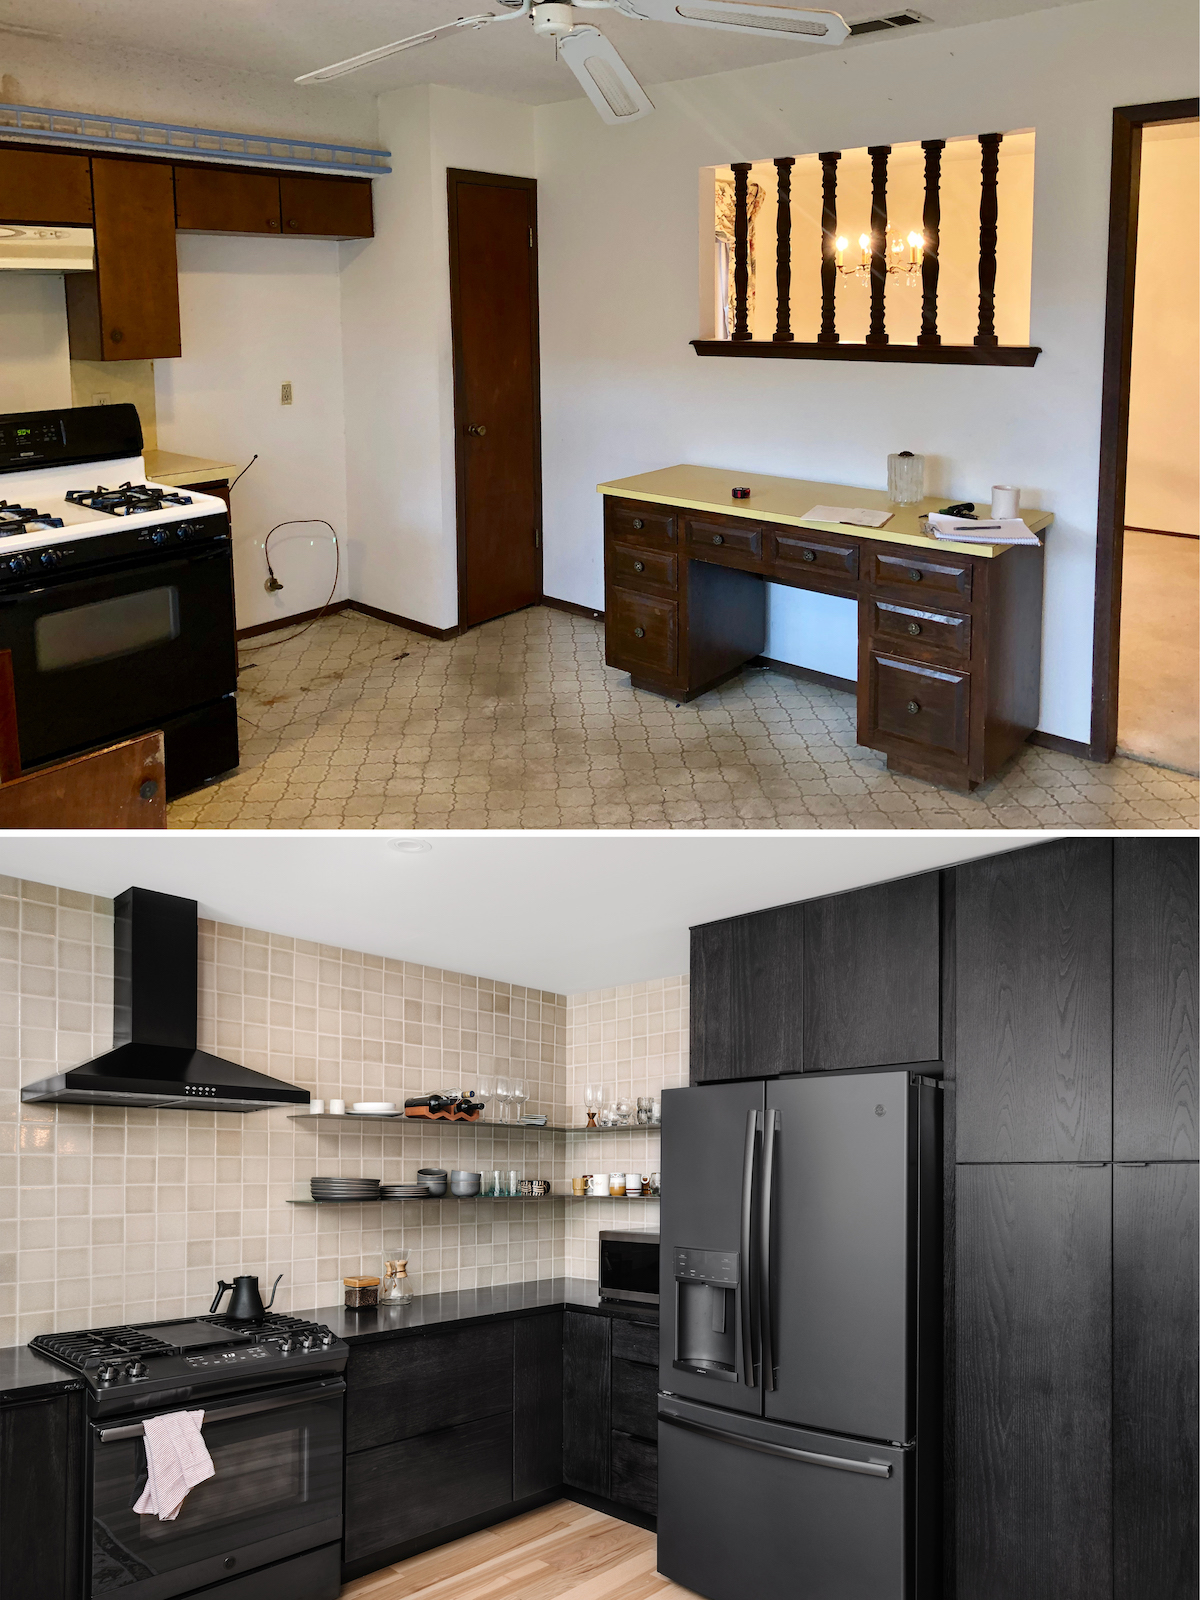 1970s Kitchen Remodel Before and Afters - The Effortless Chic